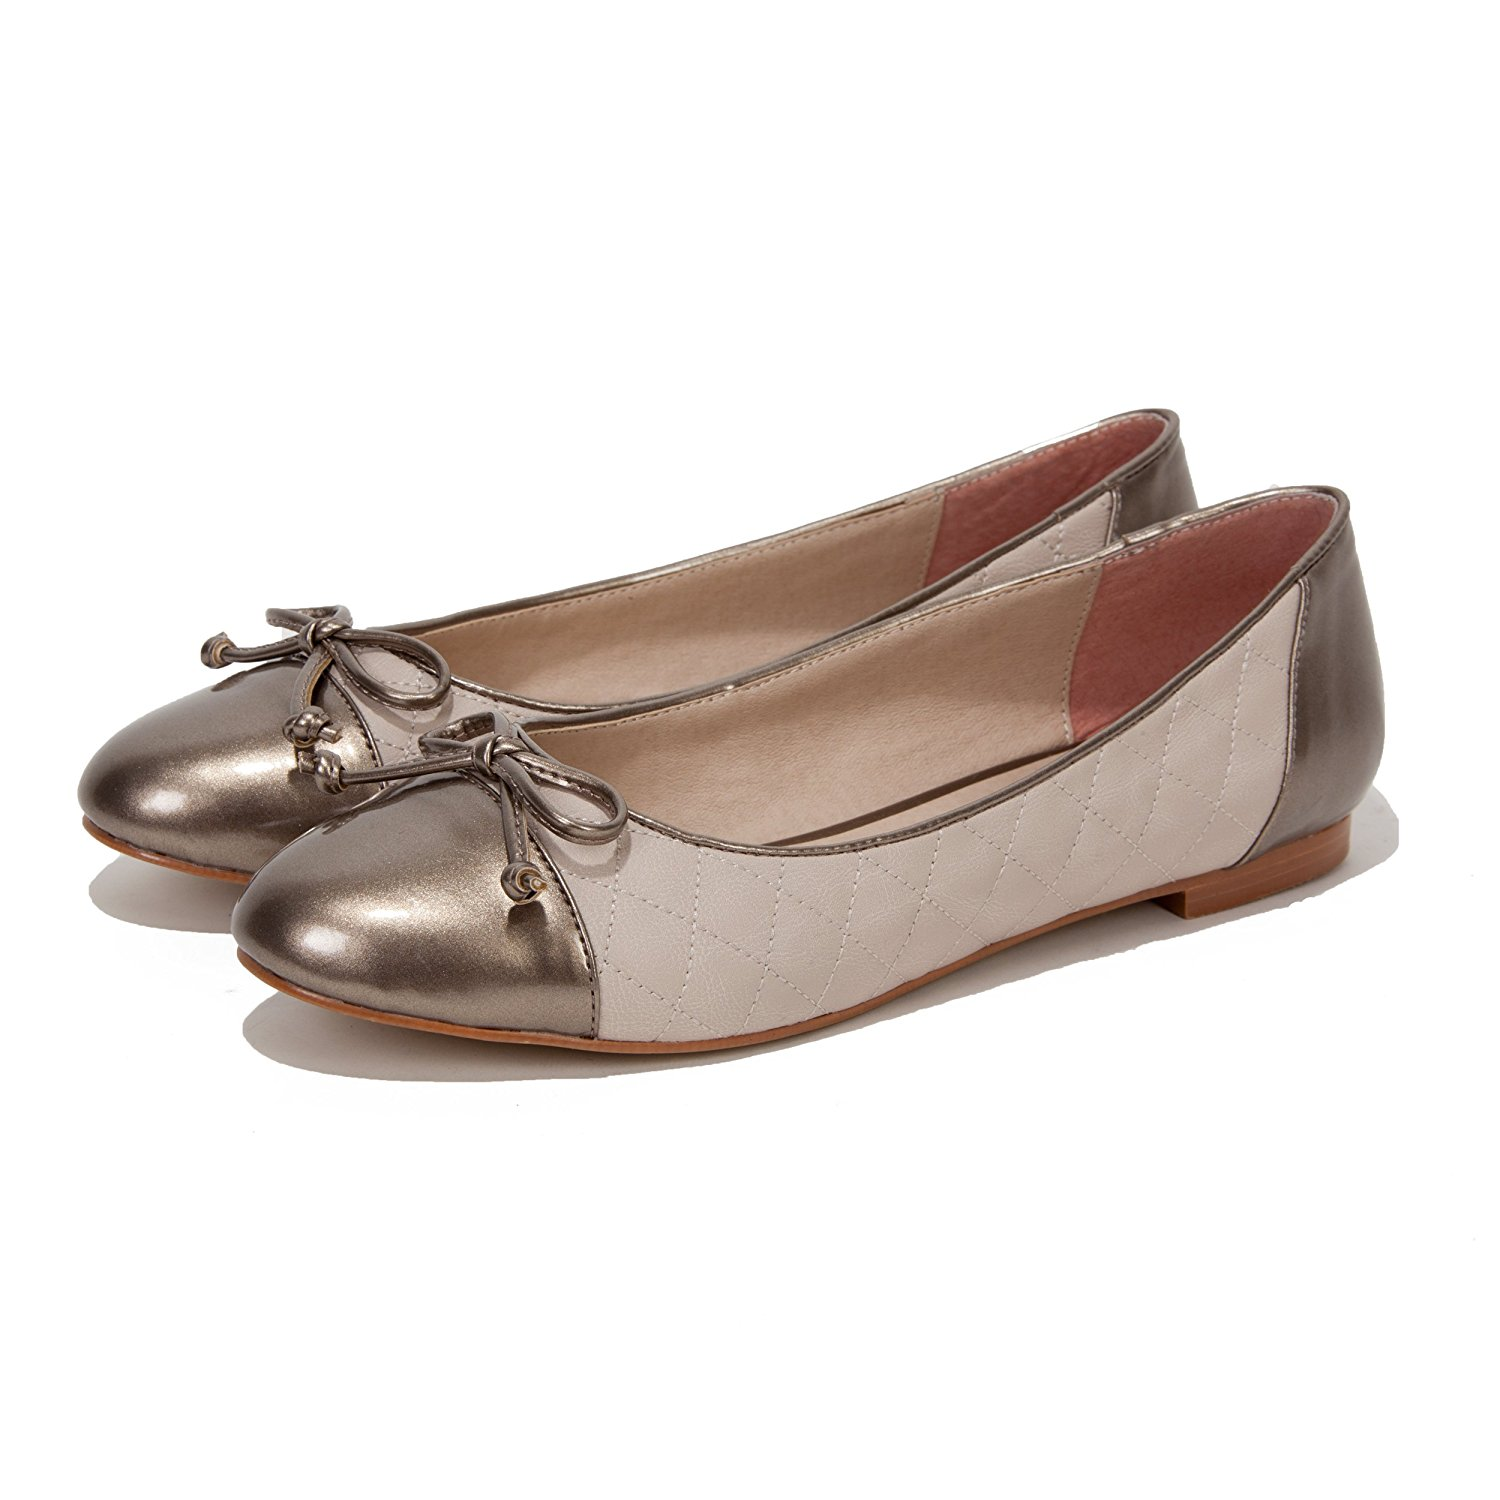 98ab2181e4d36 Get Quotations · Quilla Ballet Flats - Ballet Flat Shoes - Flats for Women  - Quilted Leather Ballet Flats